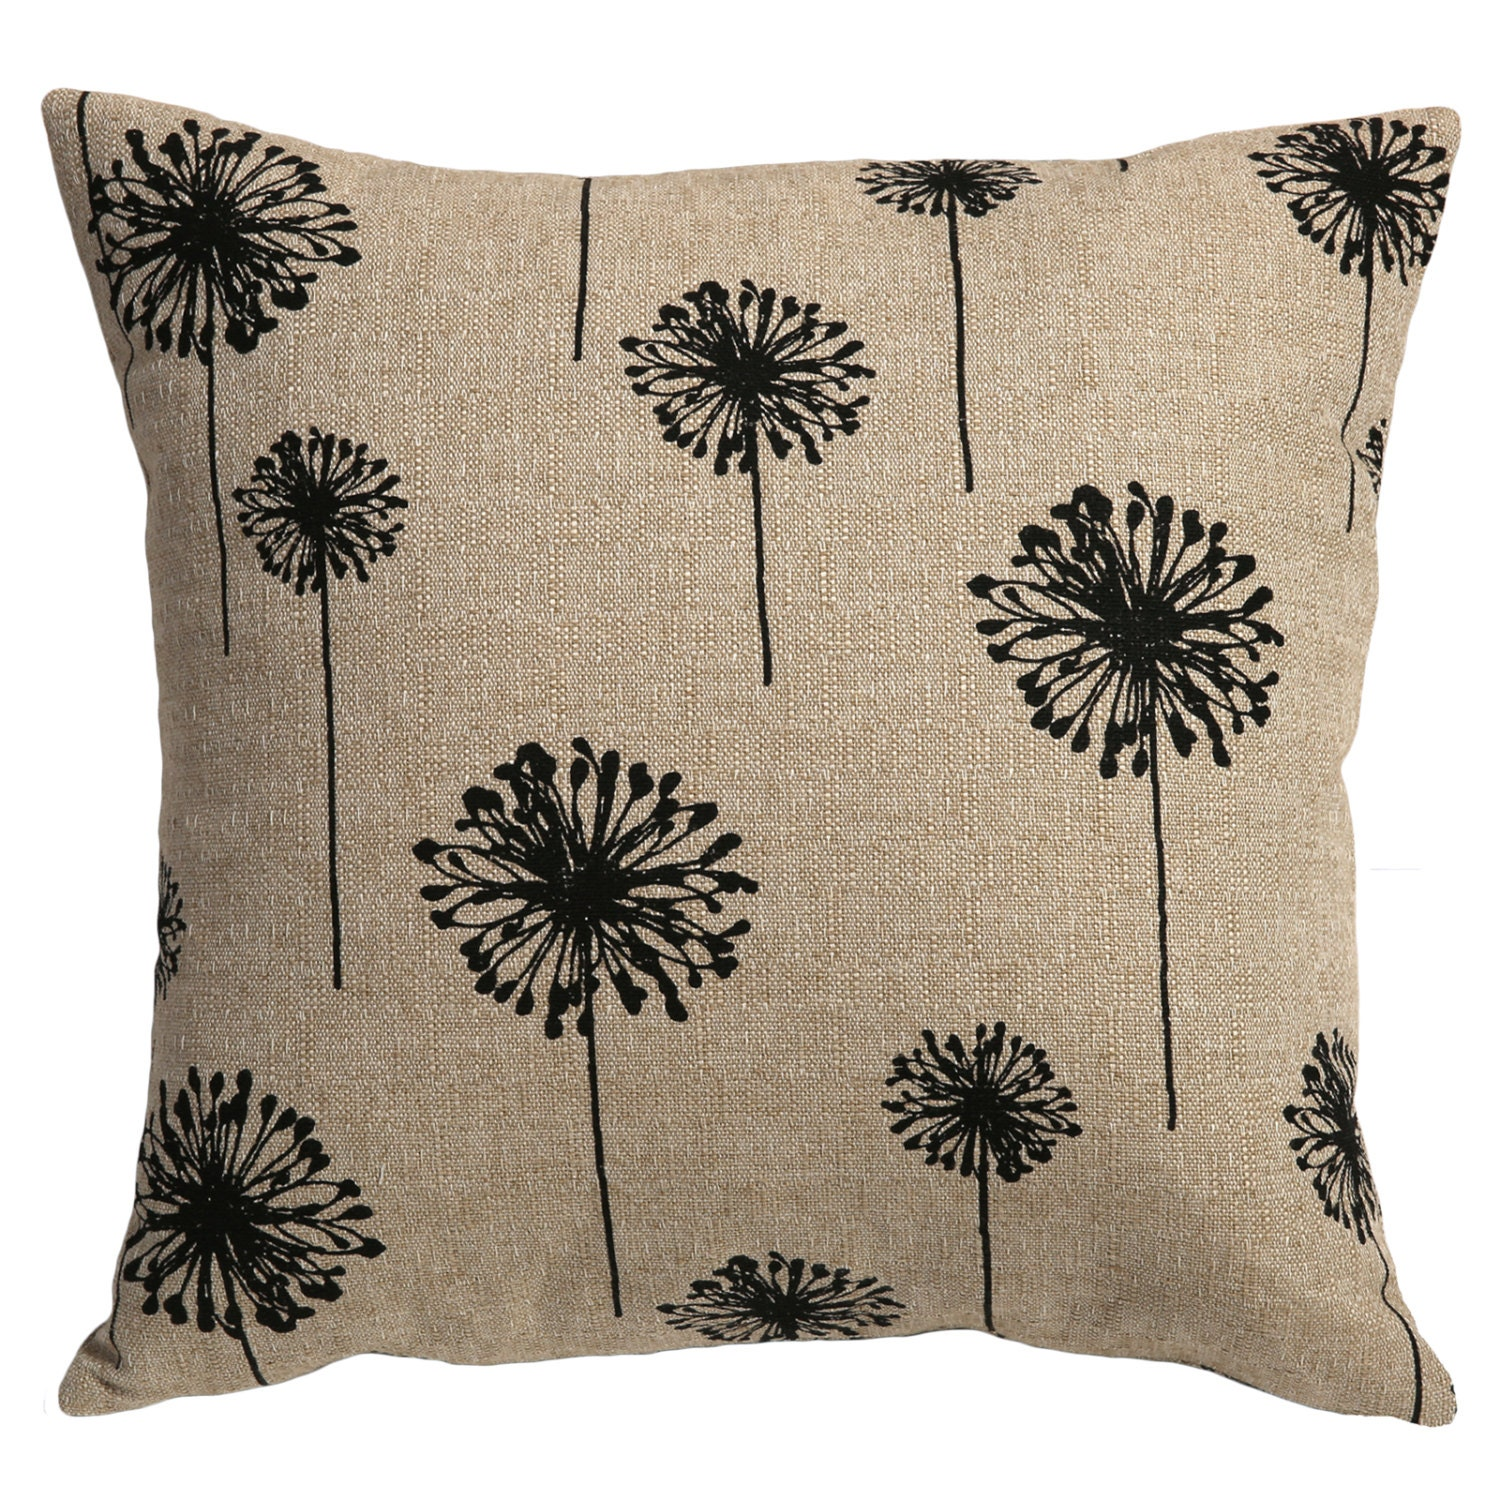 One Decorative Zipper Pillow Cover Black Dandelions by Pillomatic